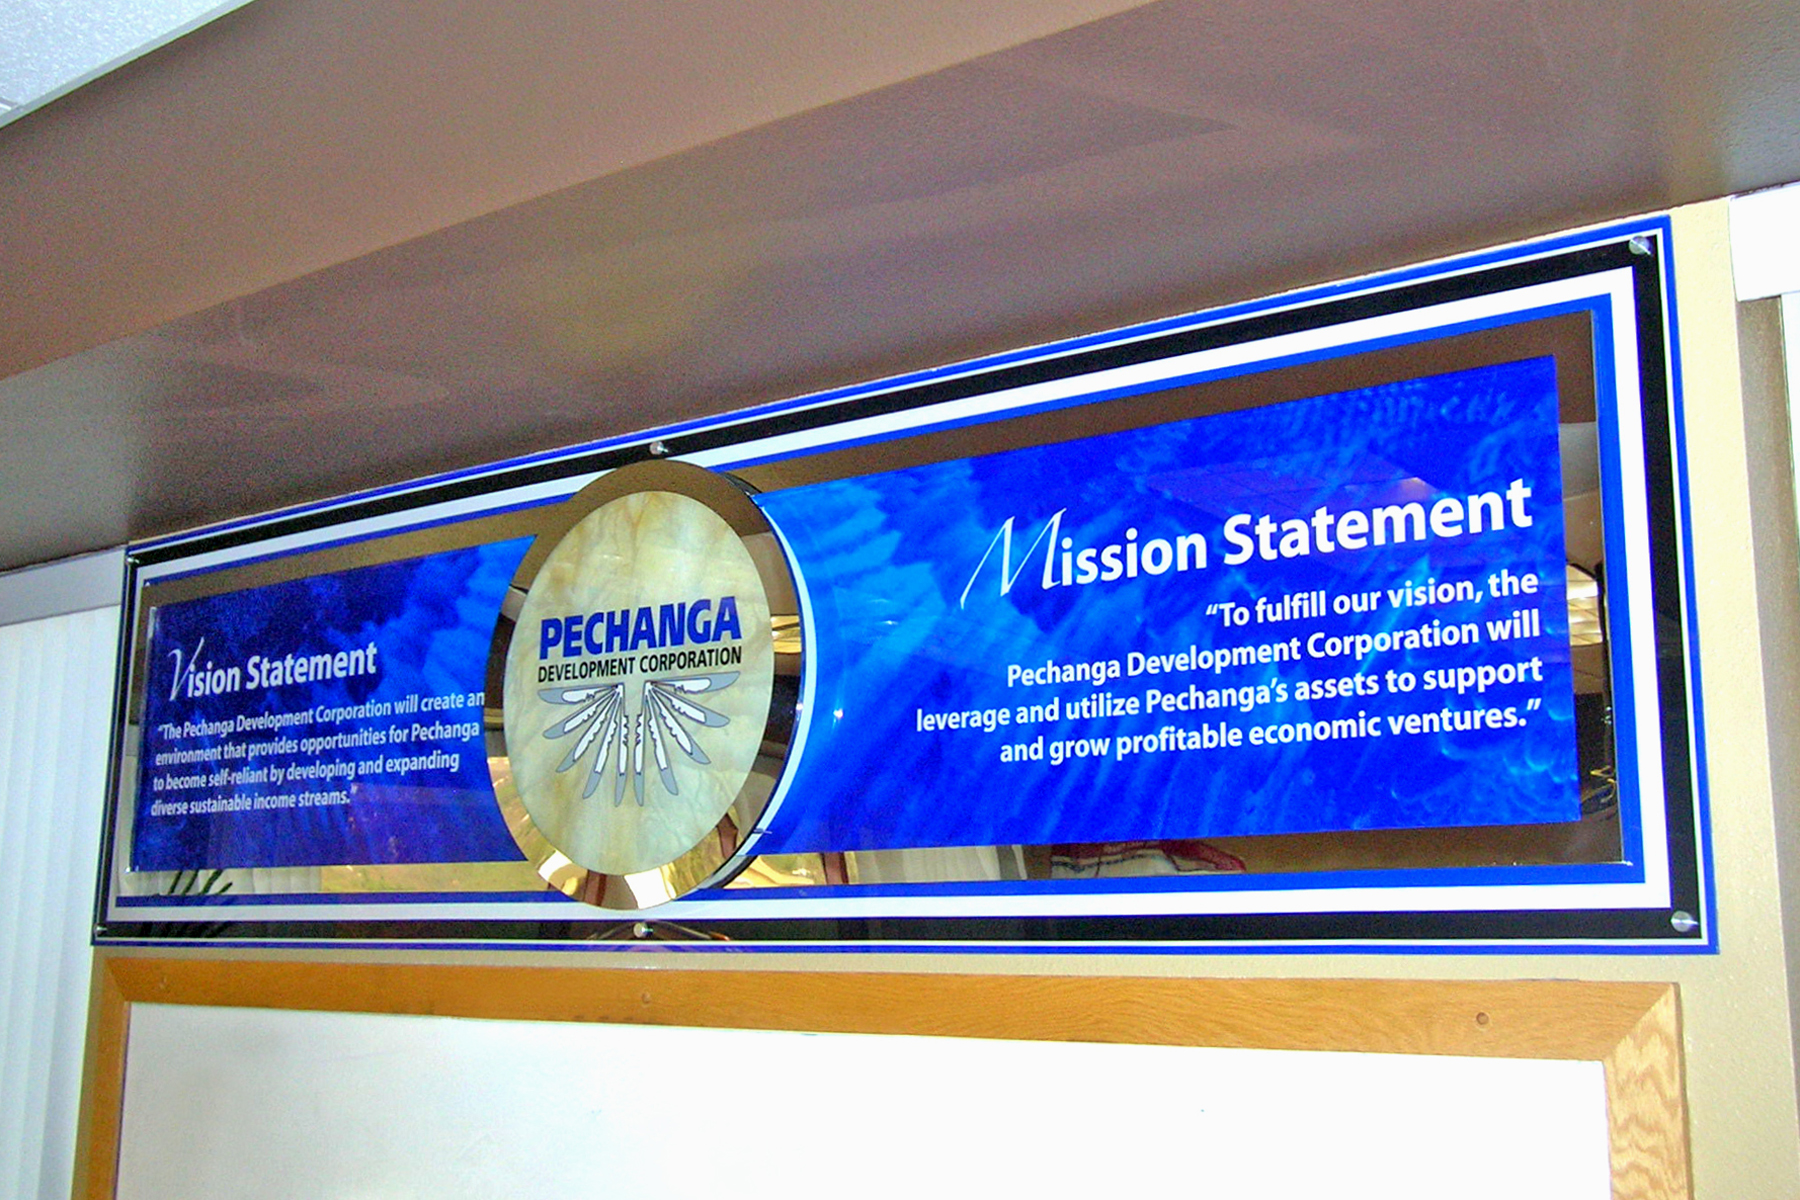 Pechanga corporate boardroom display